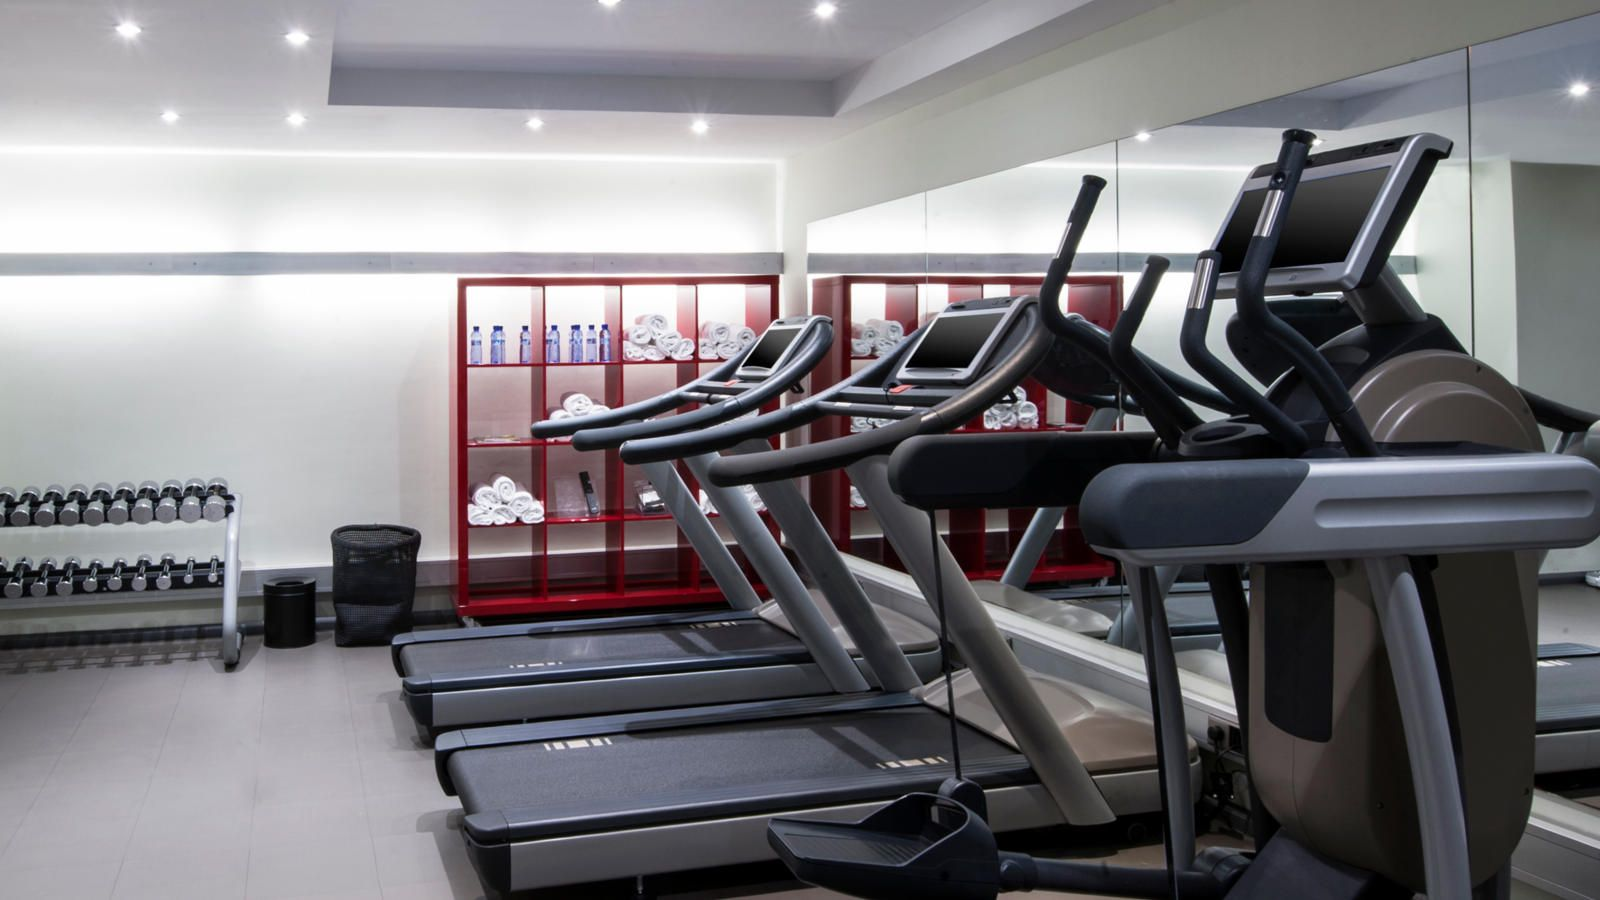 Treadmills for a perfect training